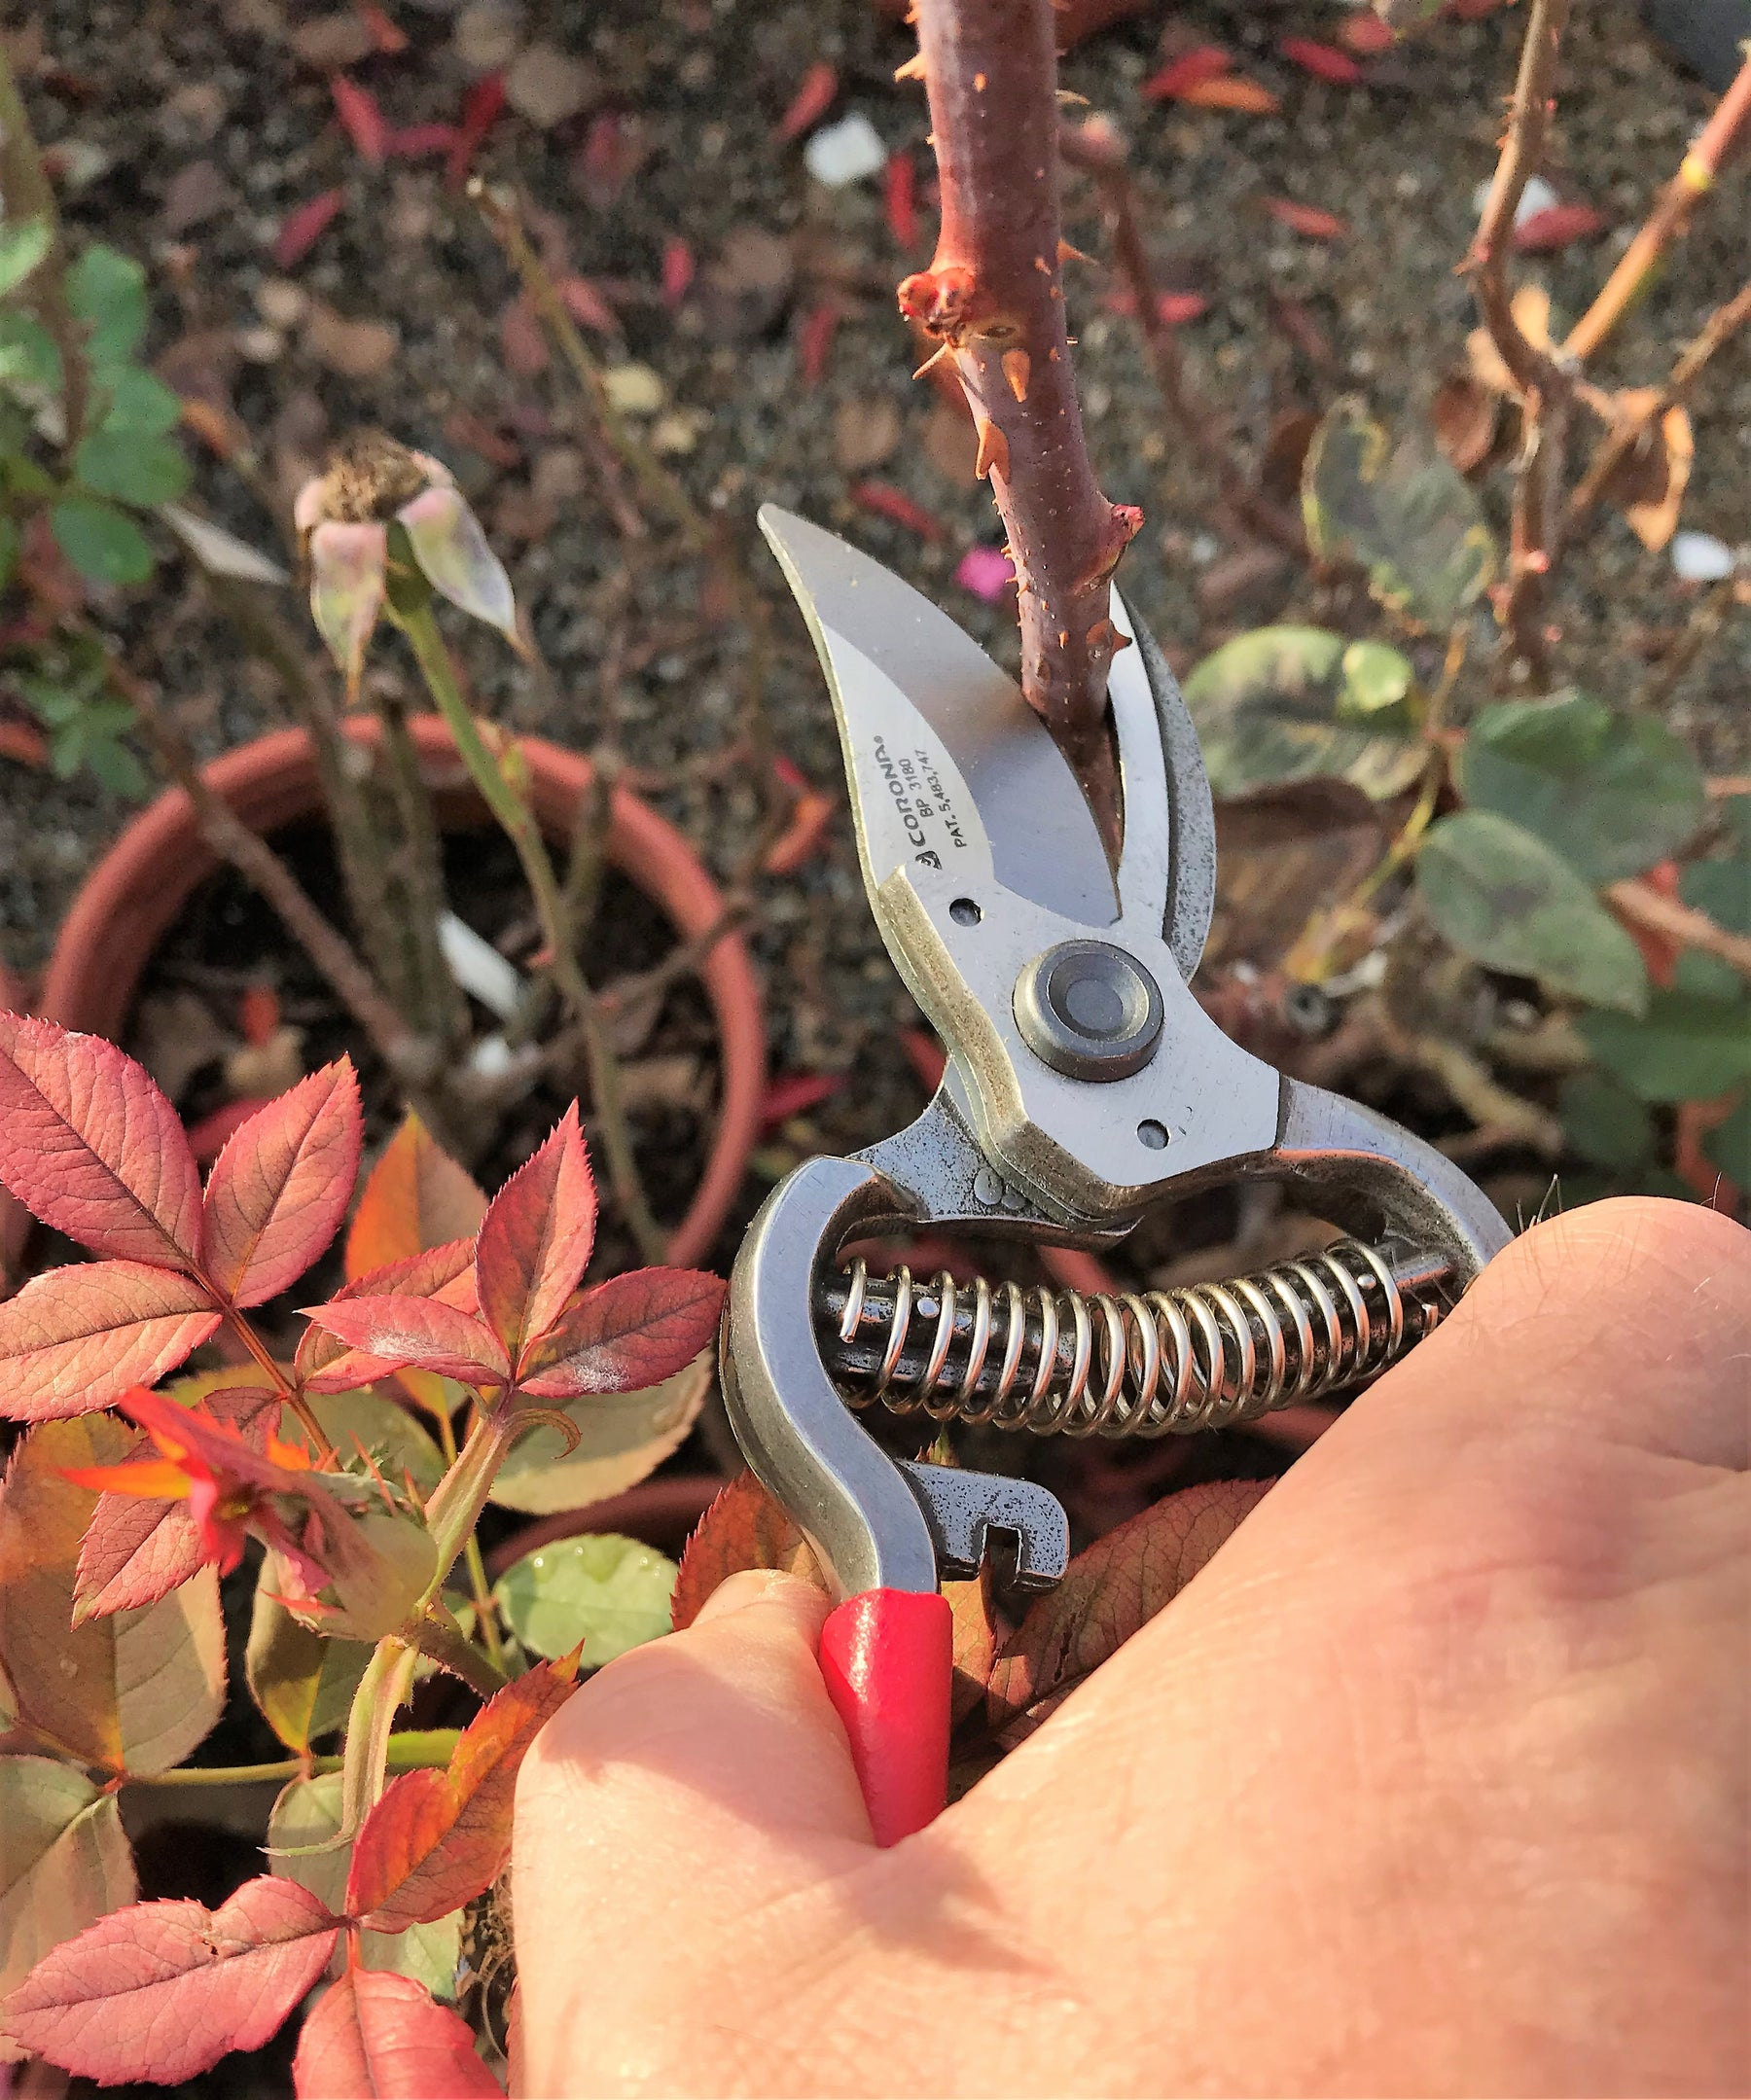 Pruning Rose Bush